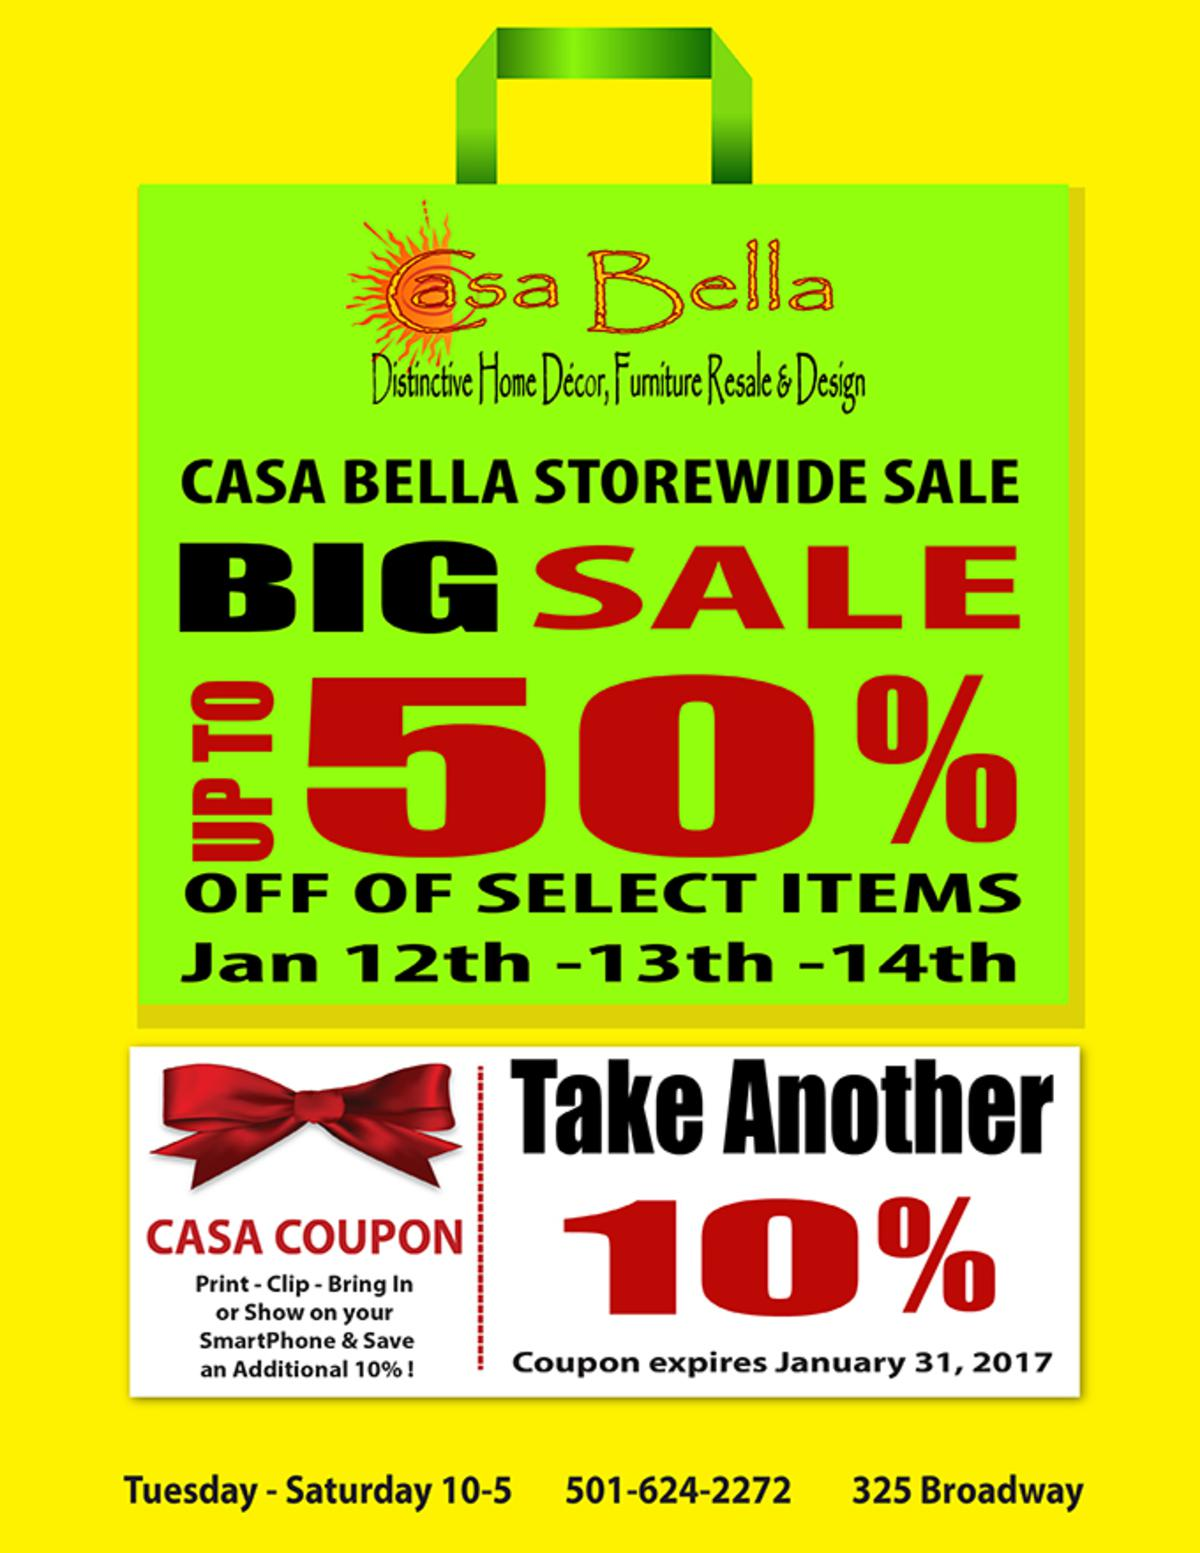 Casa Bella Home Blog About Consignment Furnitur Decor And Art Projects For Your